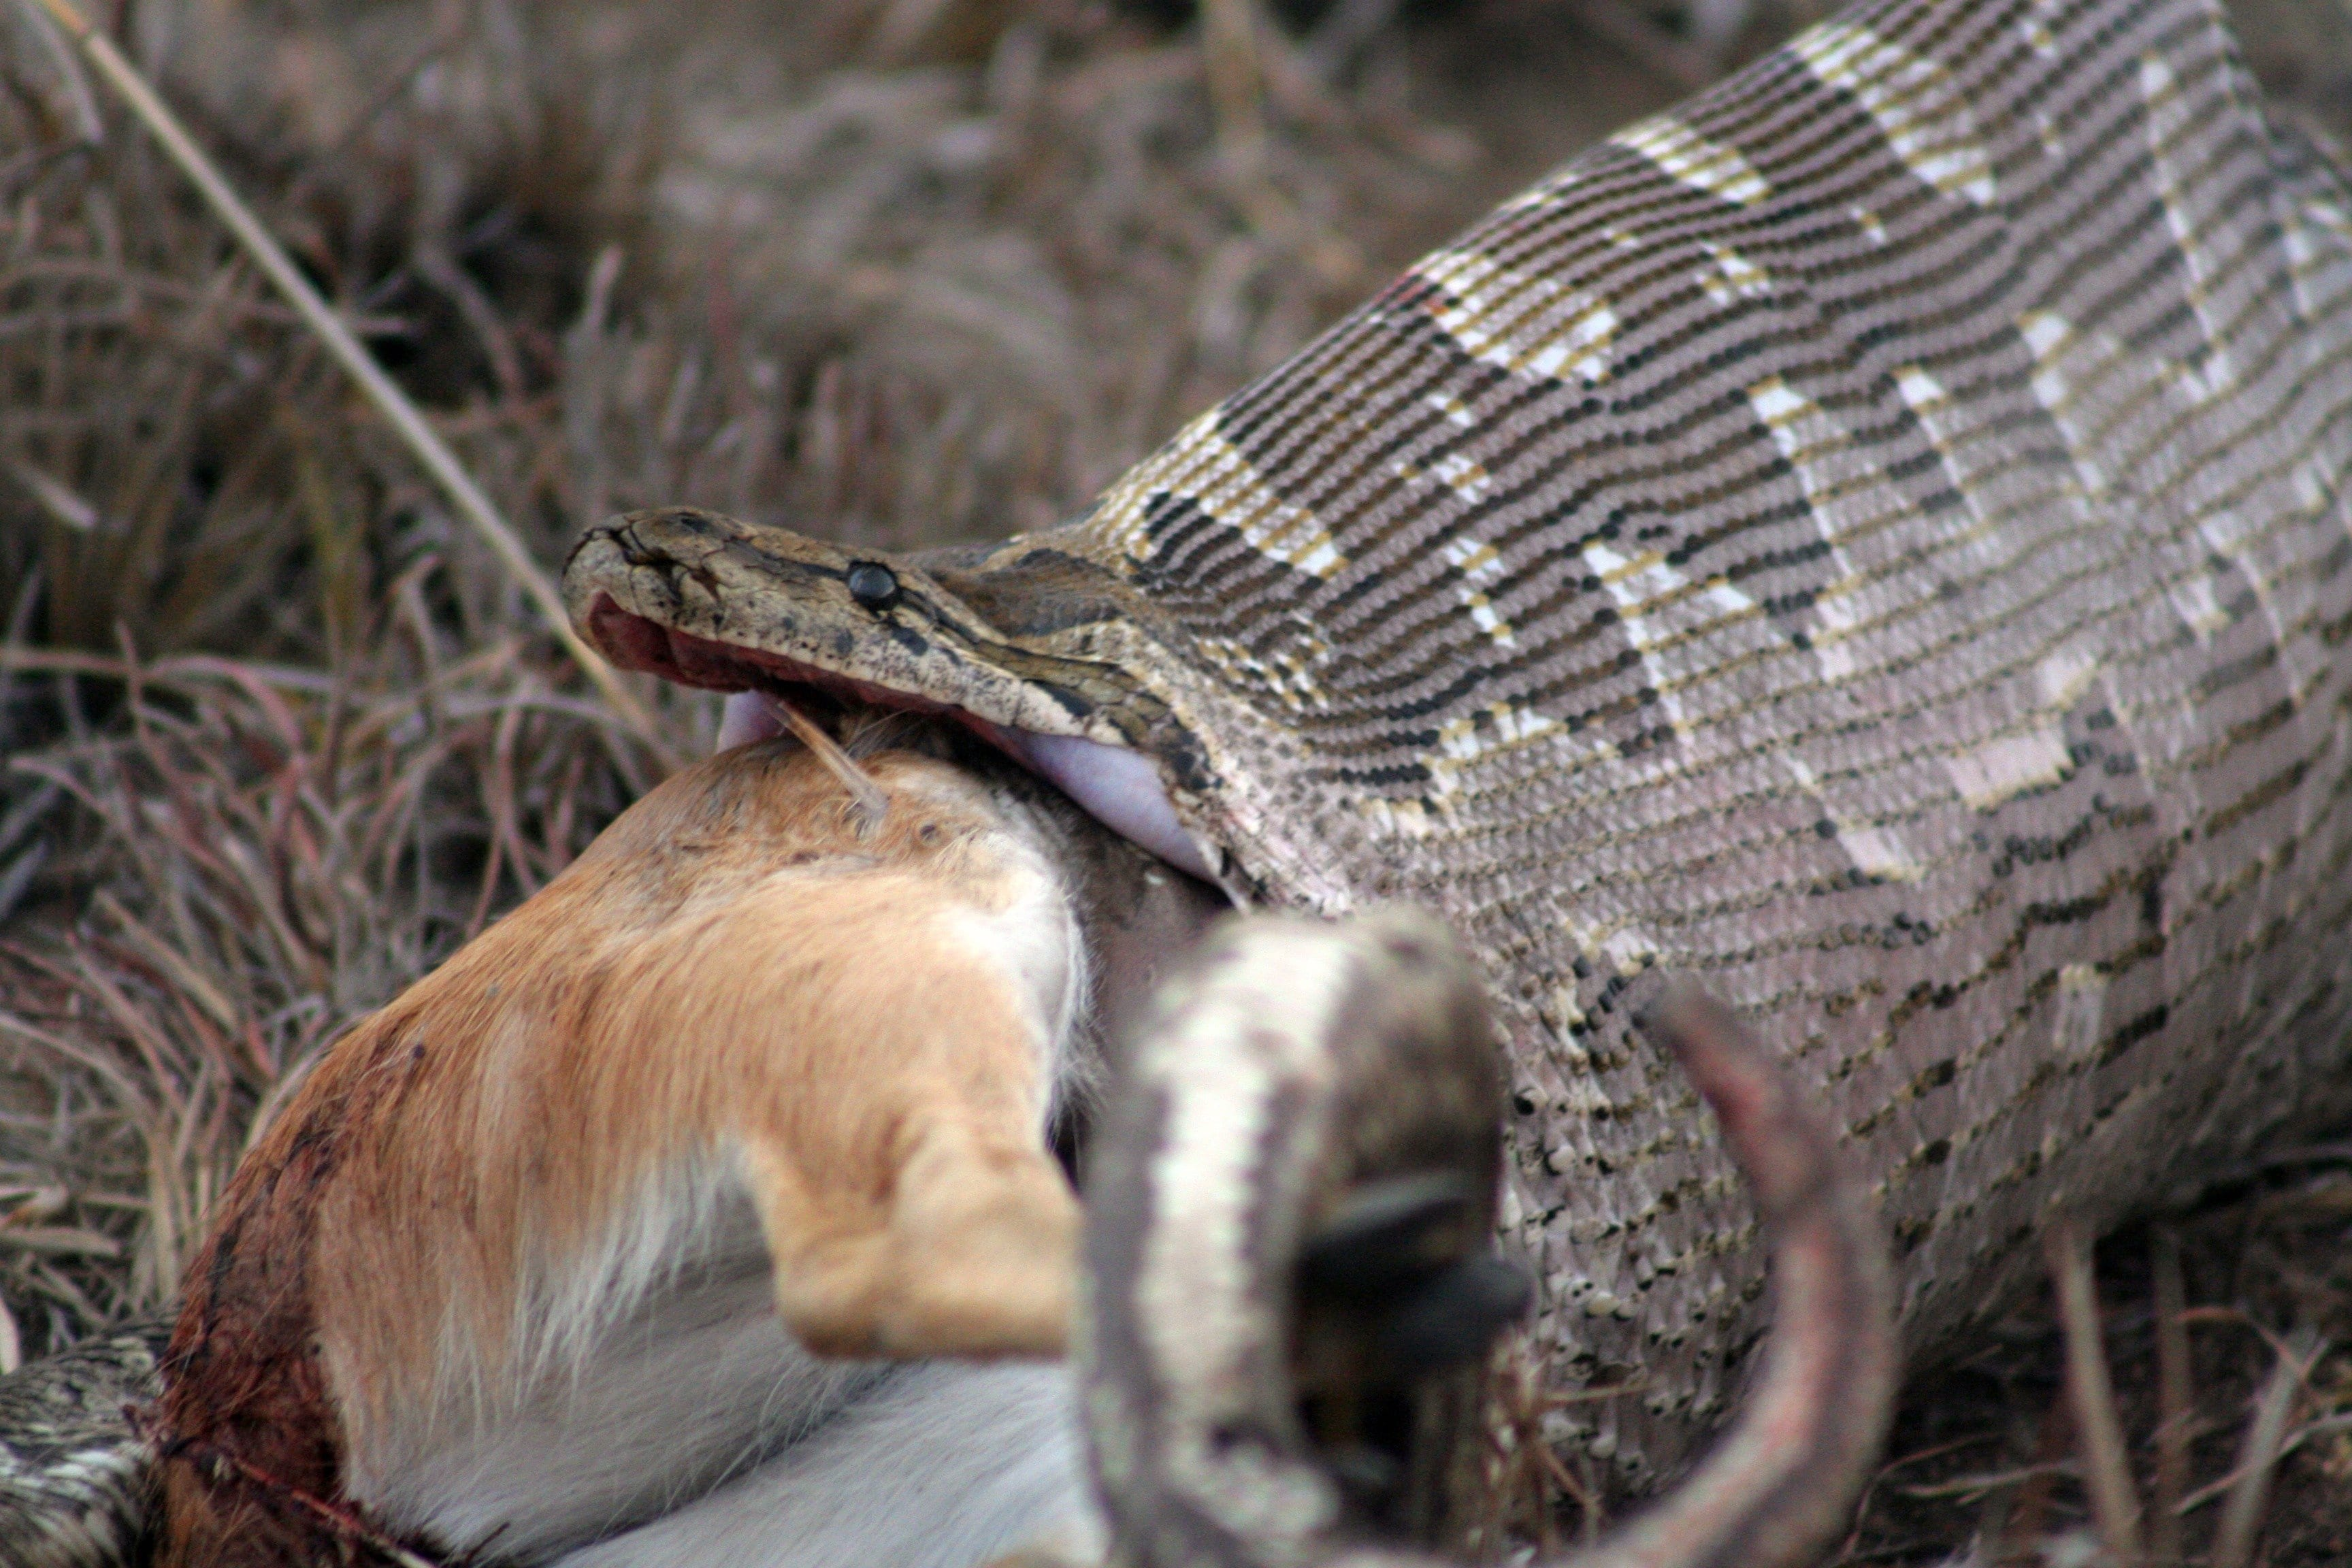 rock python eating antelope